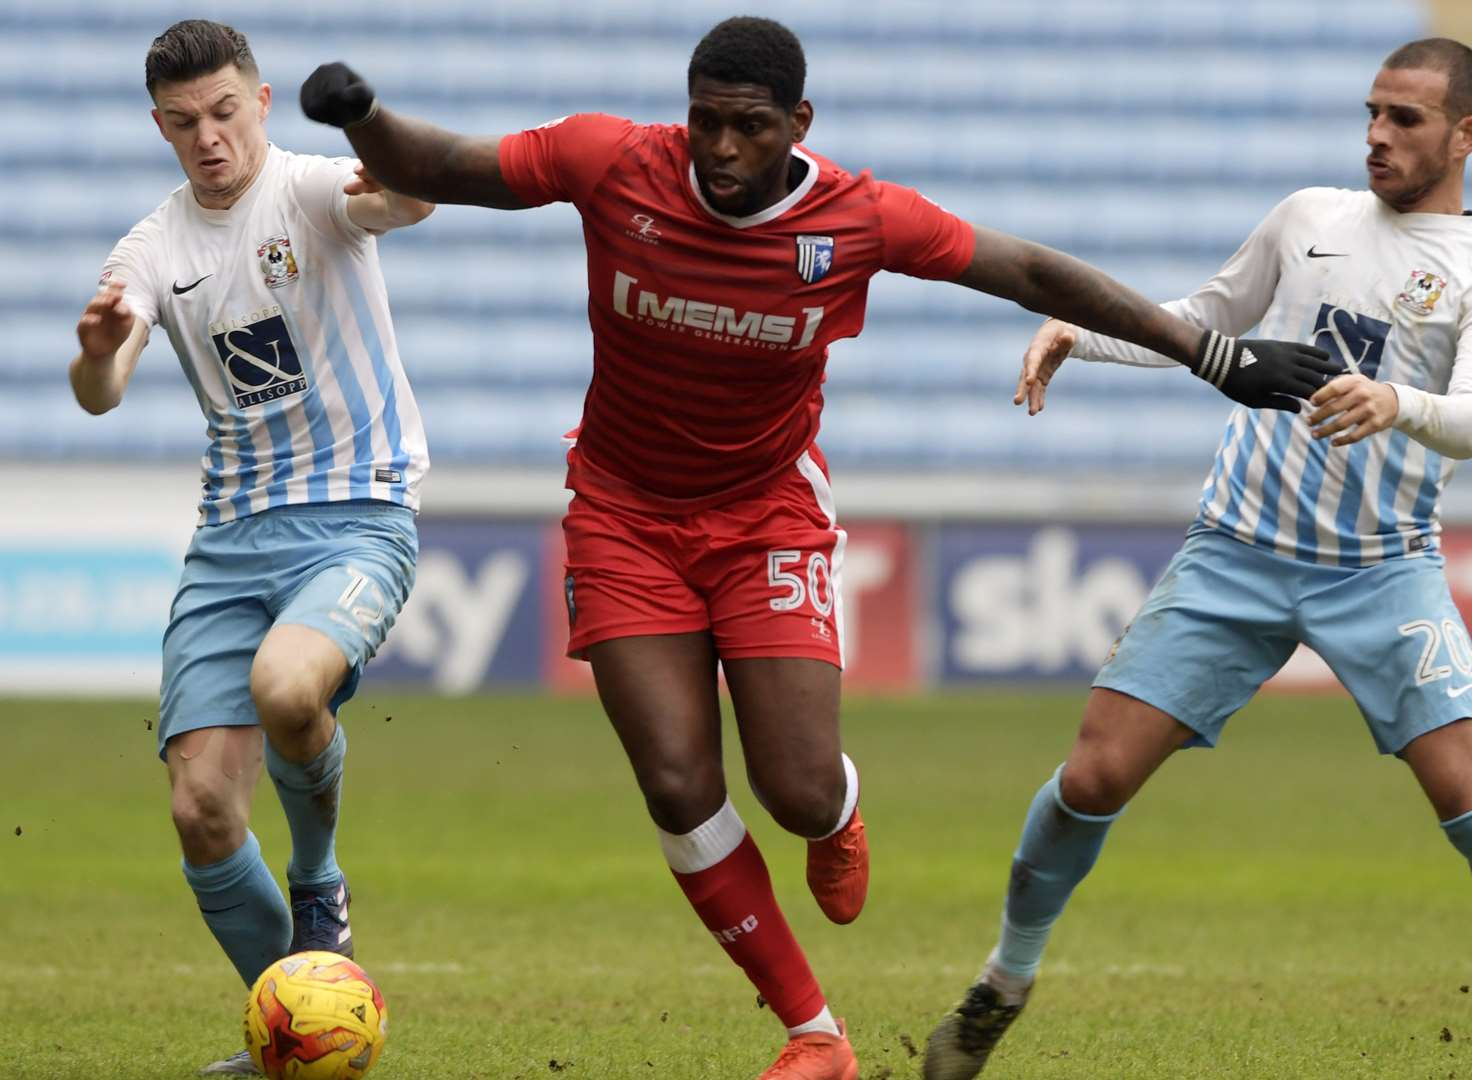 Gills' winless run extended to 10